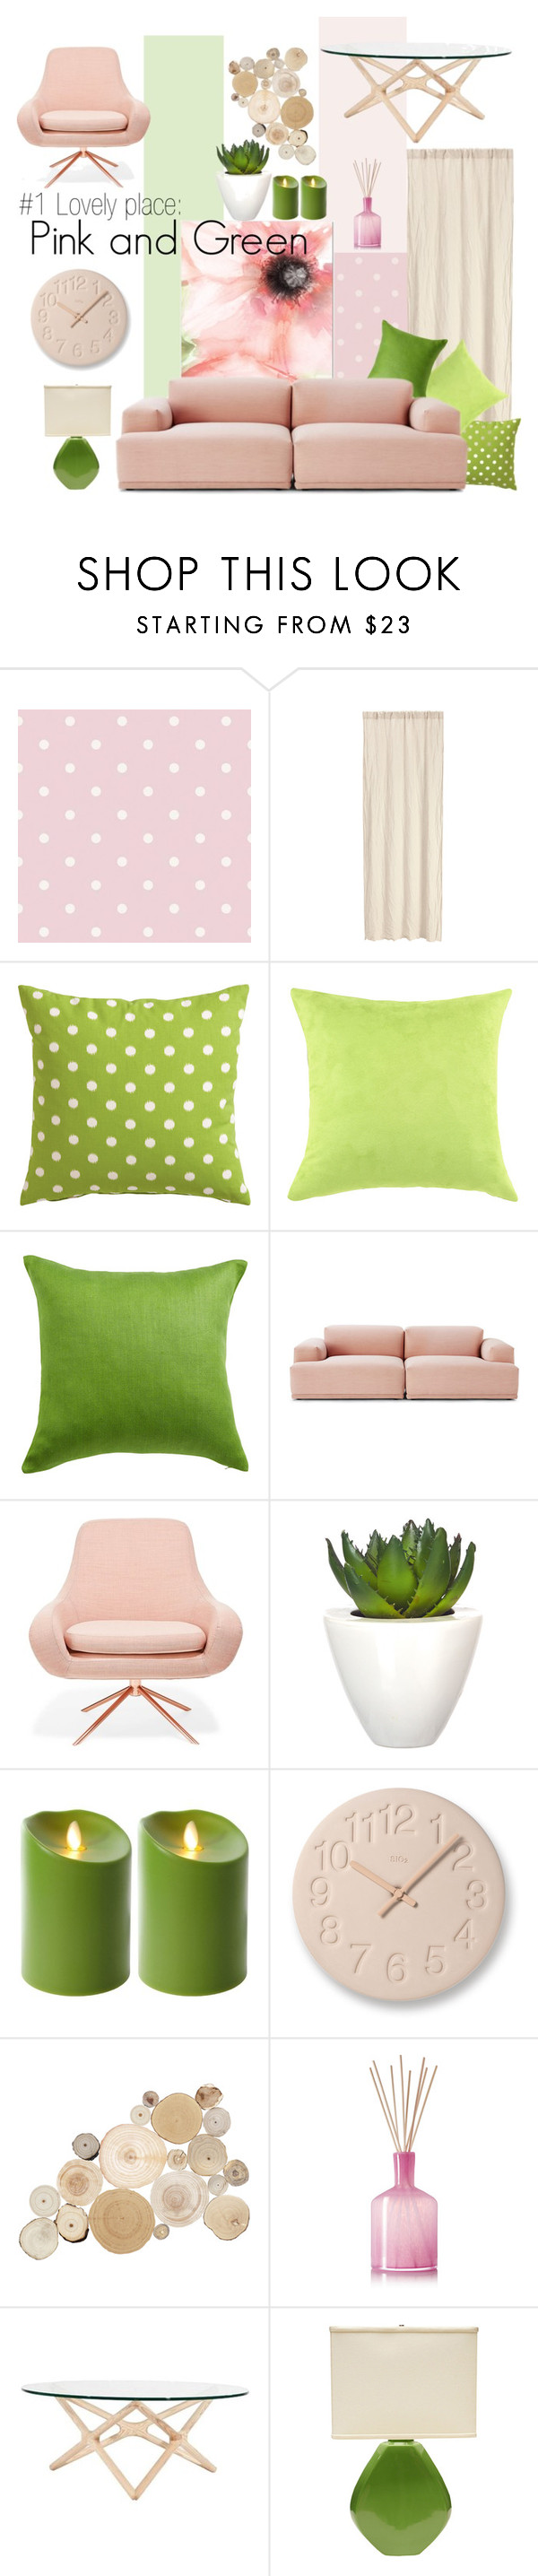 """""""#1 LOVELY PLACE: PINK AND GREEN"""" by witchfromheaven on Polyvore"""